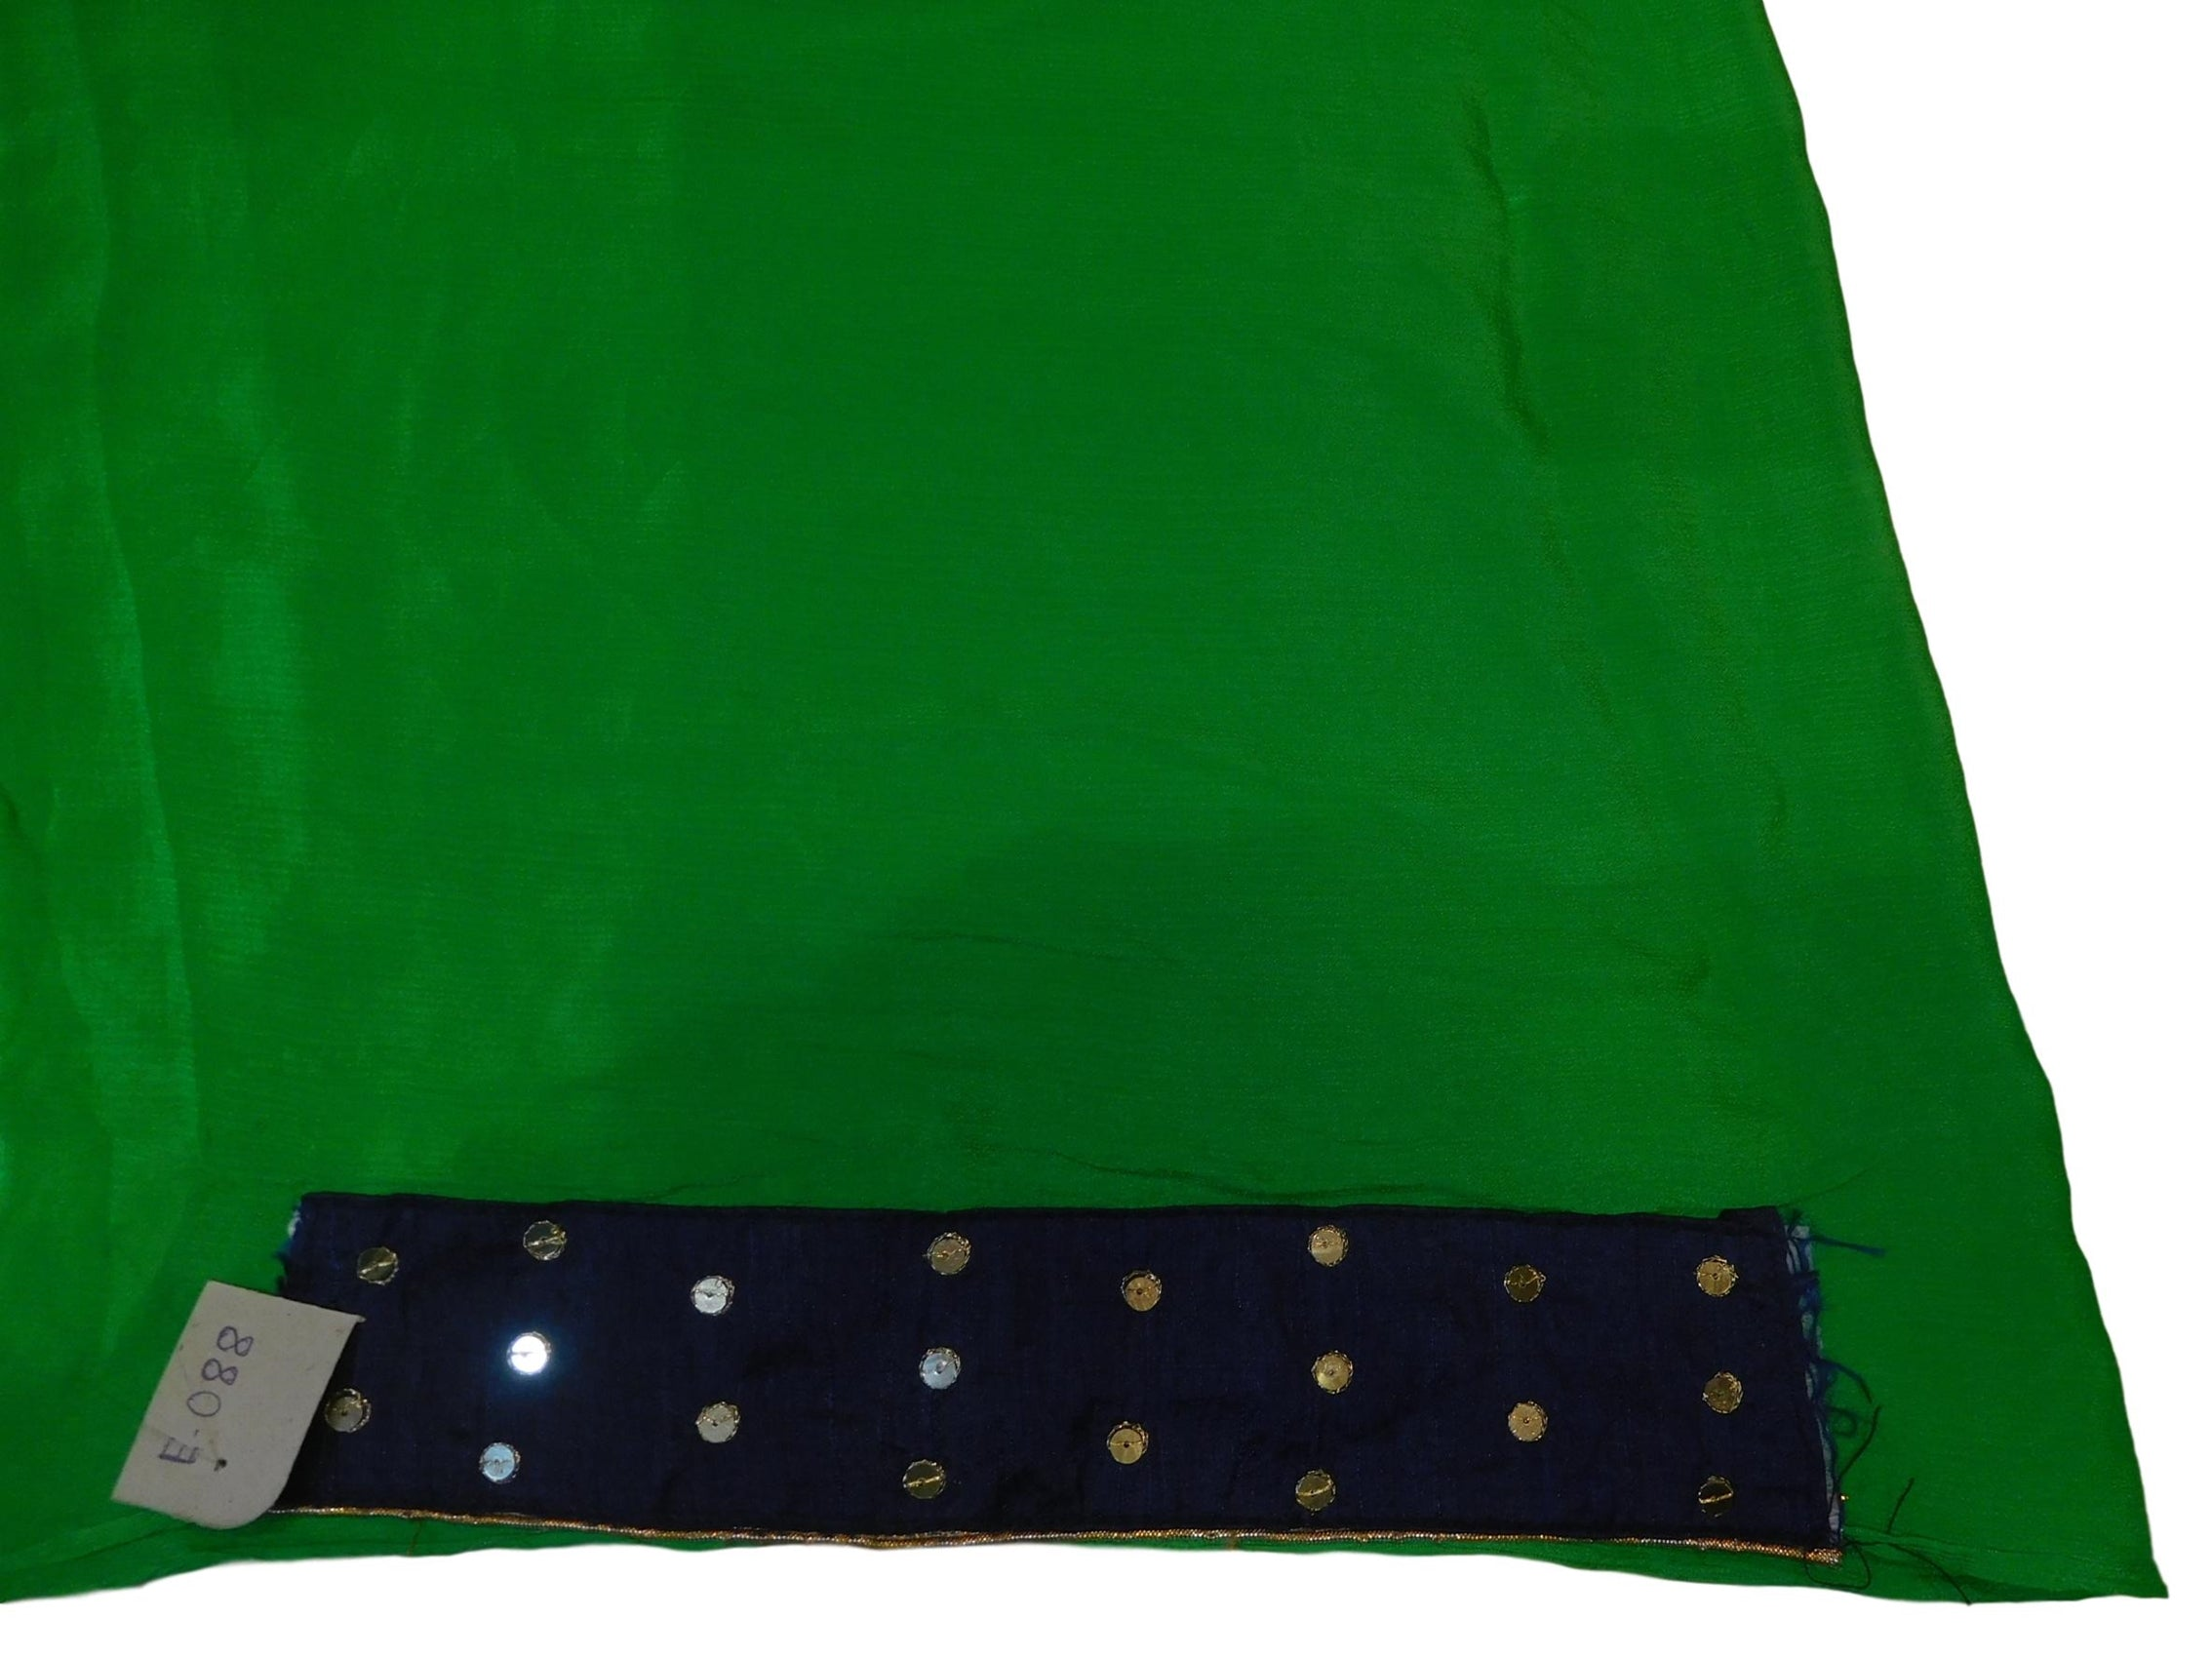 Green Designer Wedding Partywear Crepe (Chinon) Bullion Pearl Sequence Cutdana Beads Hand Embroidery Work Bridal Saree Sari E088